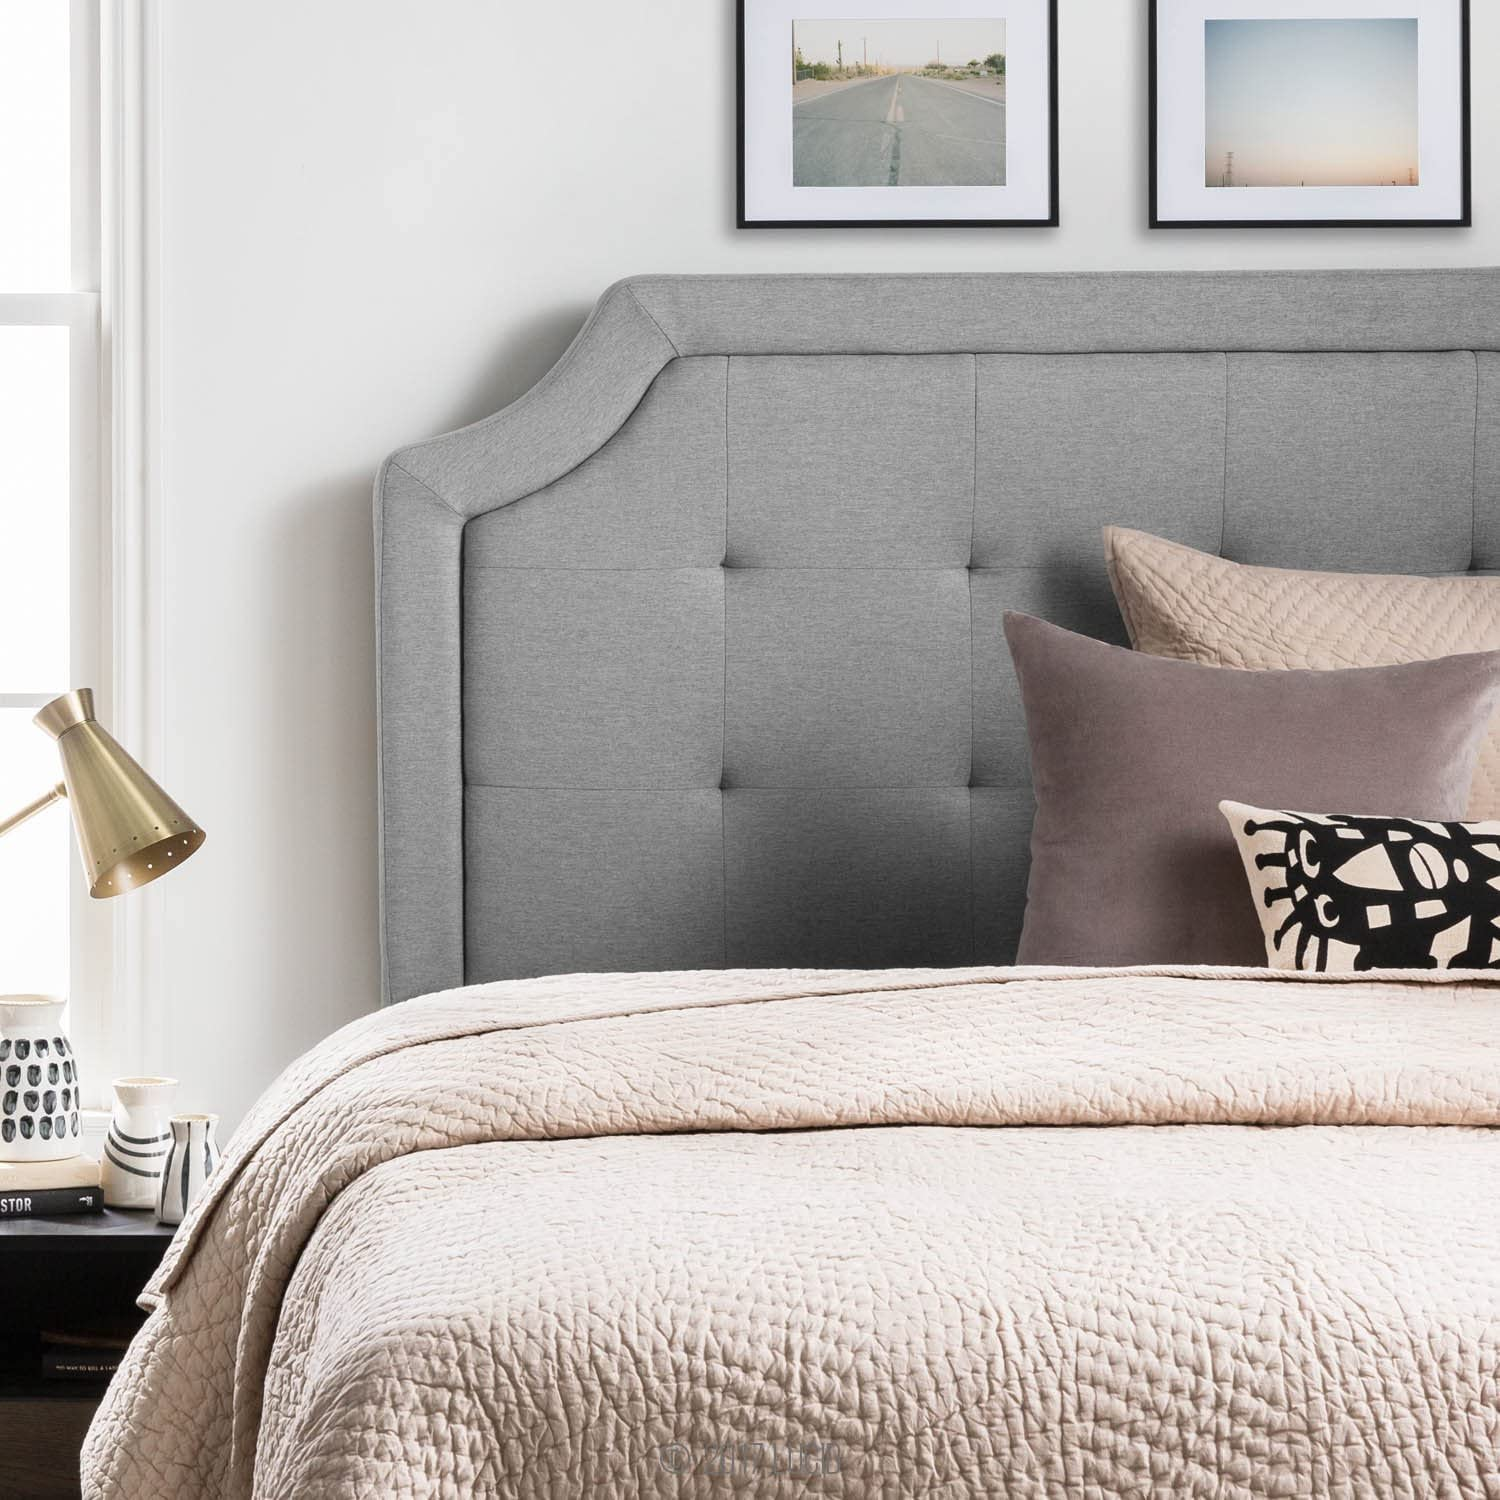 LUCID Bordered Upholstered Headboard with Square Tufting and Scalloped Edges for Queen Size Bed Frame (Stone)